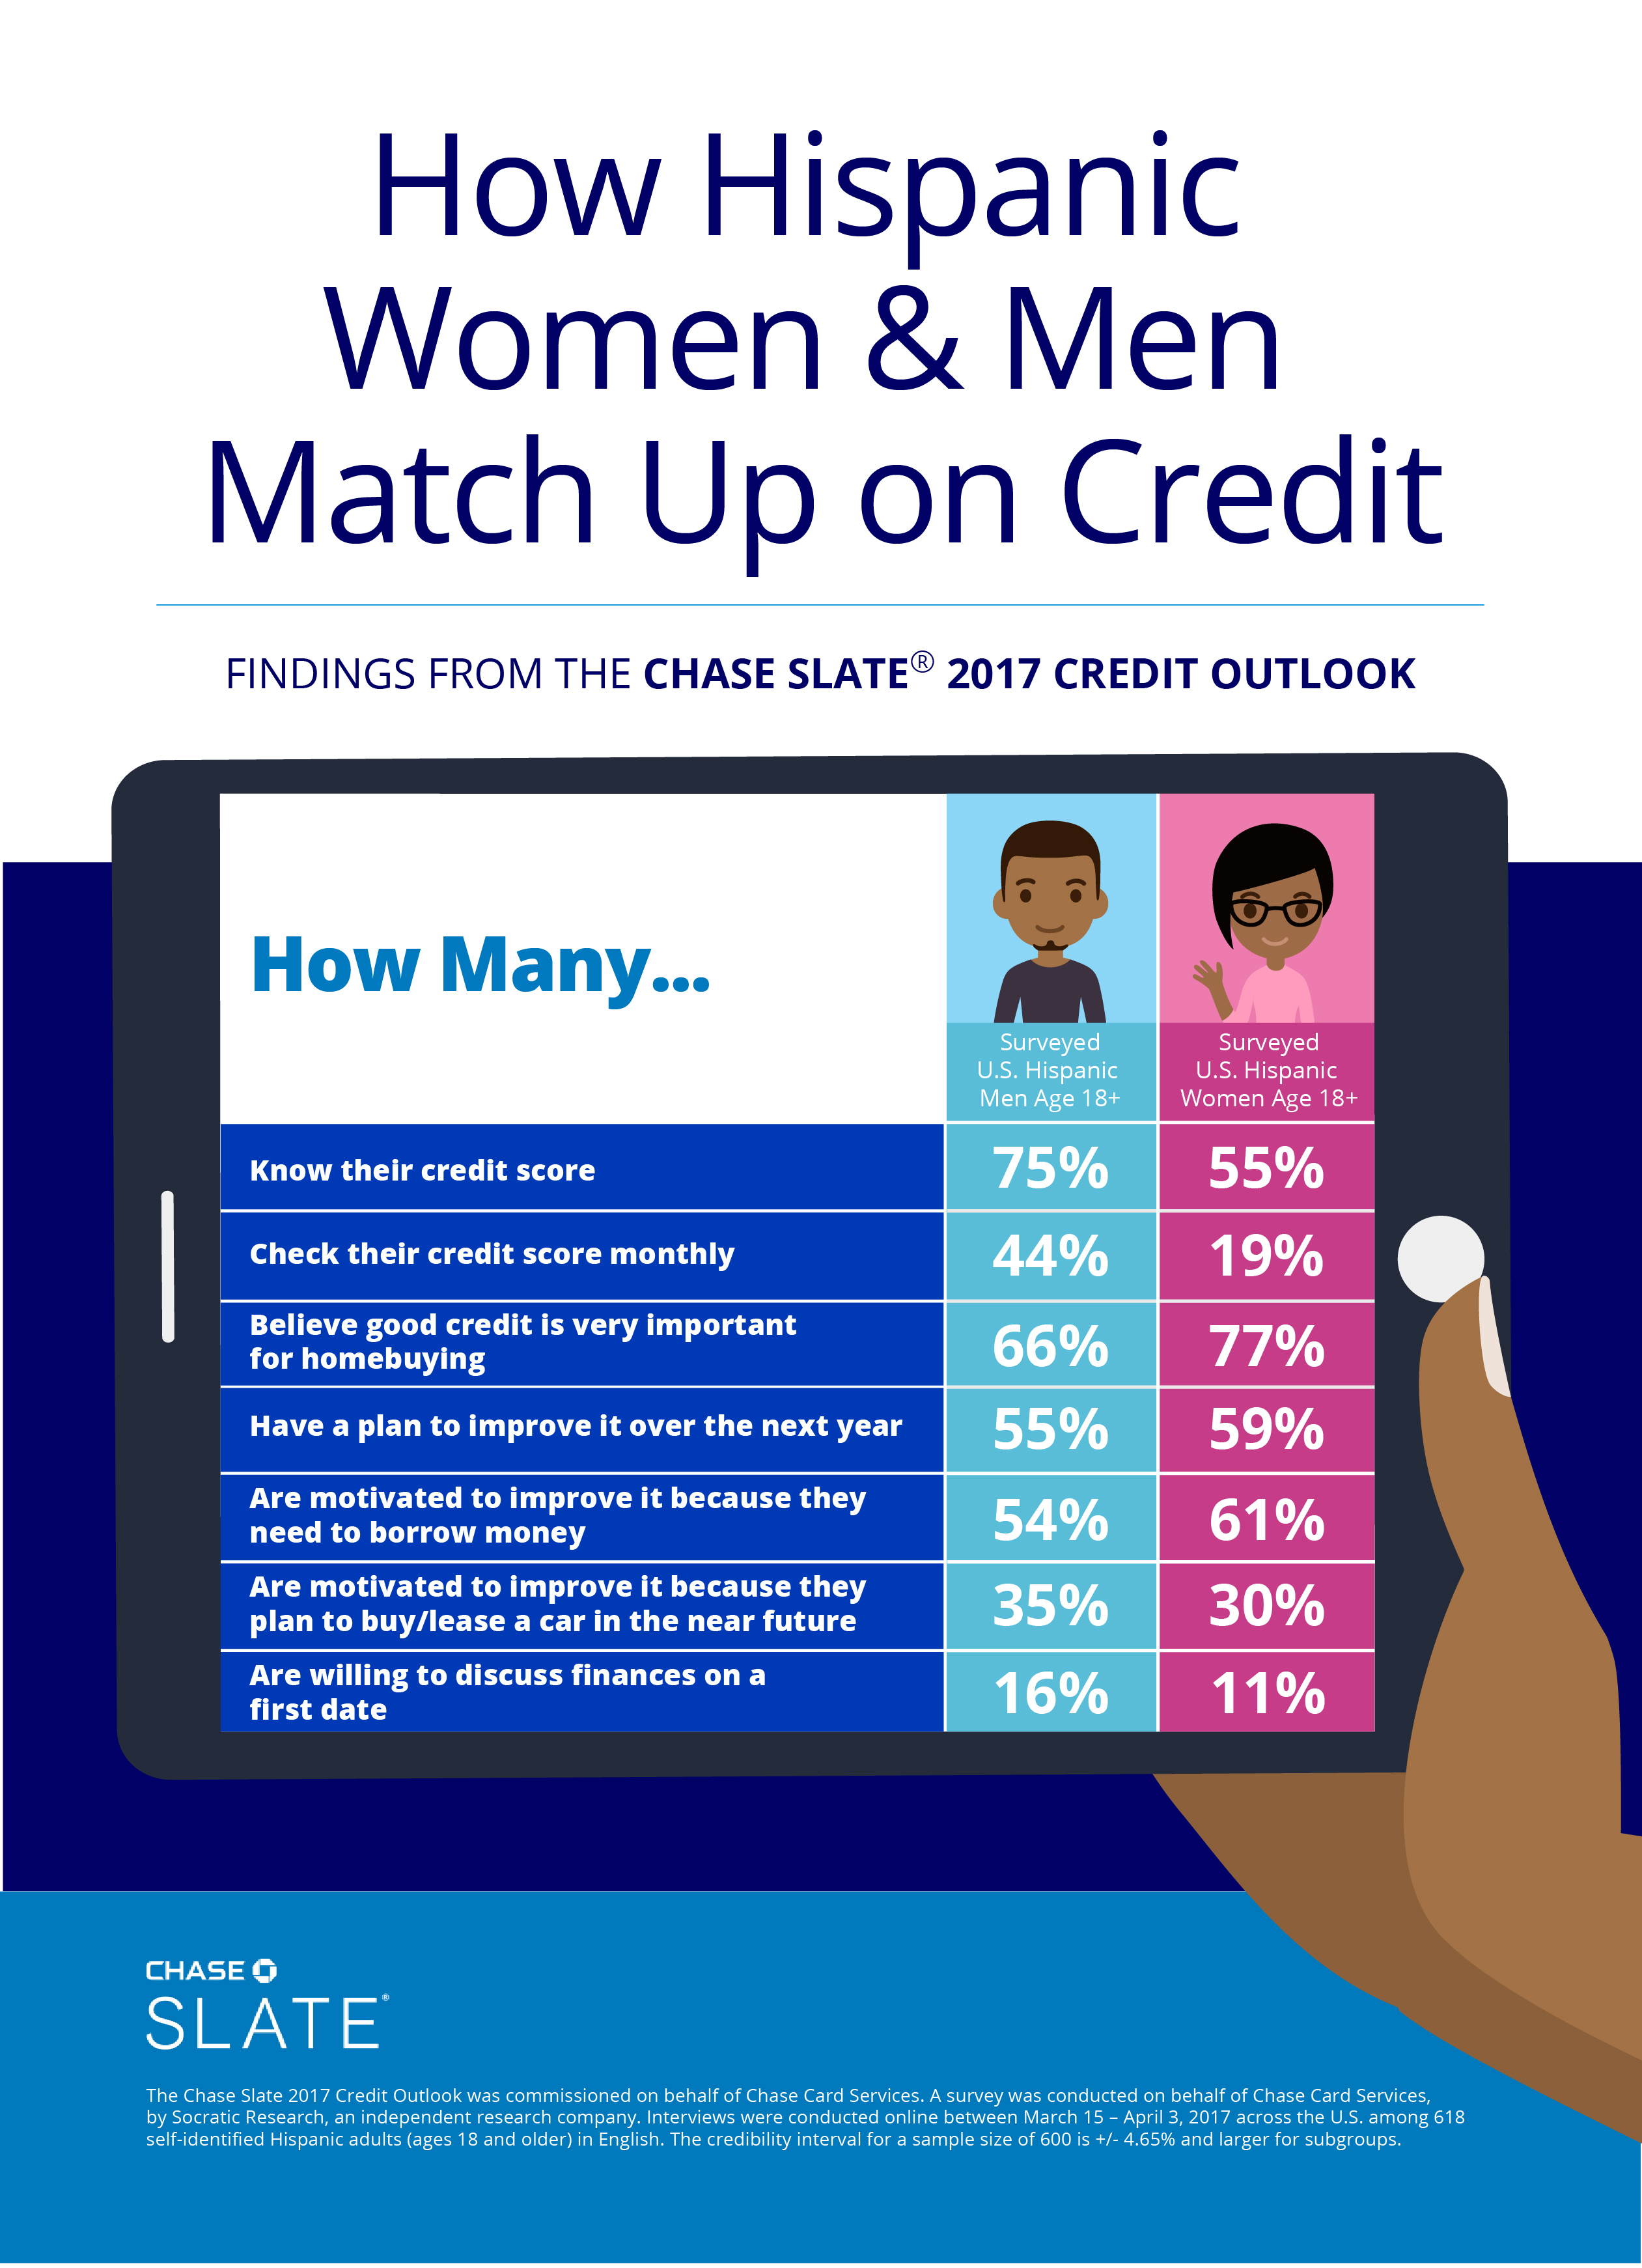 Us hispanics take action to improve credit health business wire chase card services maria martinez 212 270 5692 mariartinezjpmorgan reheart Image collections